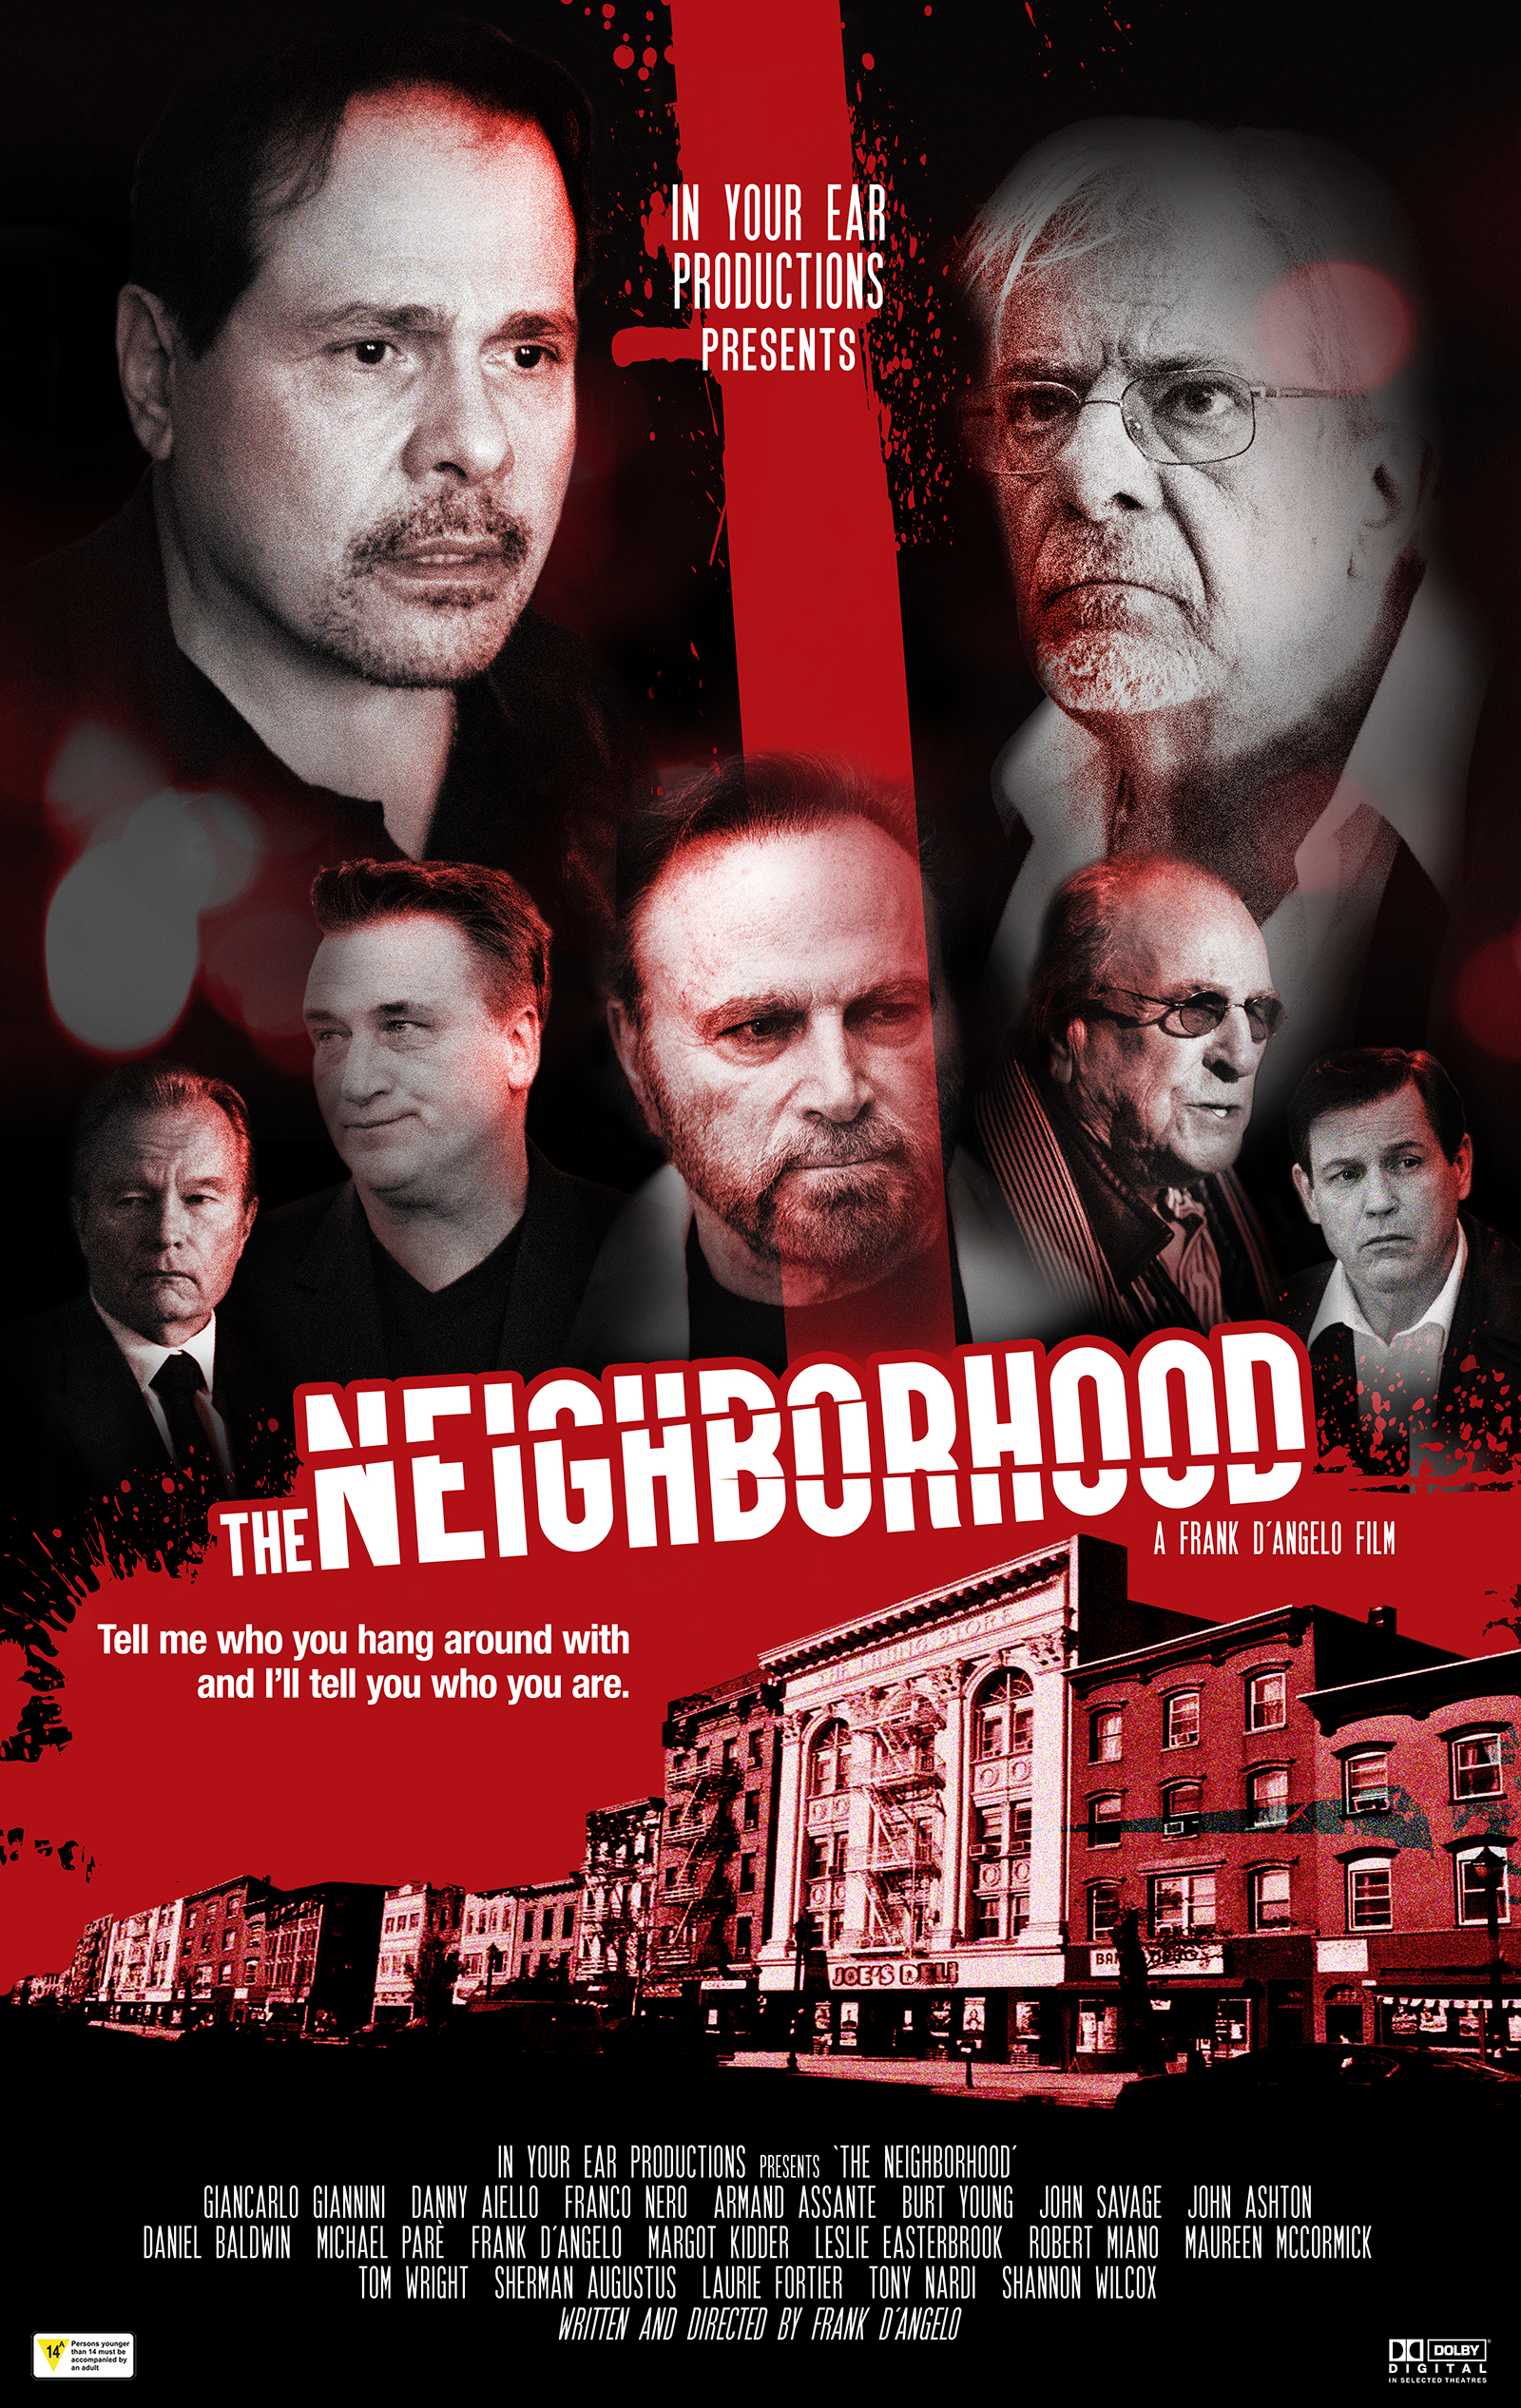 THE NEIGHBORHOOD (2017)